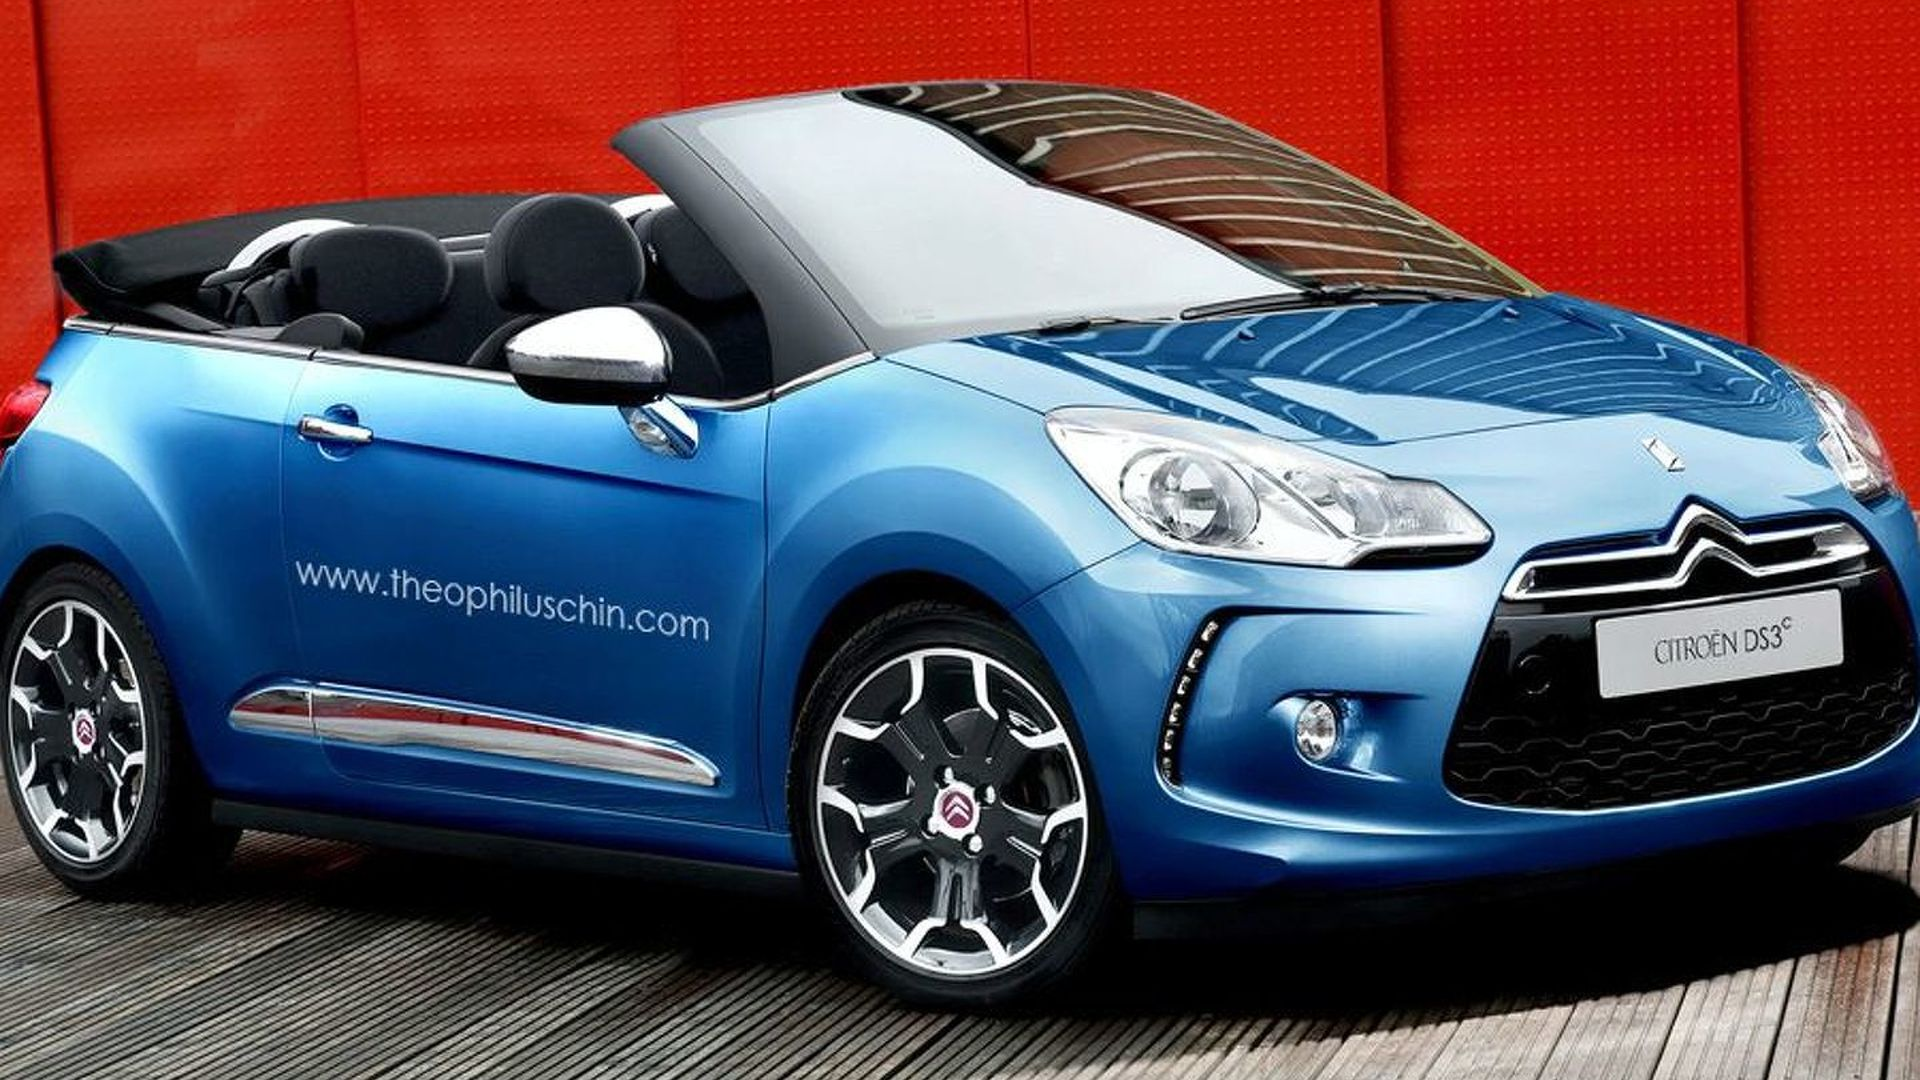 citroen ds3 convertible rendered speculated. Black Bedroom Furniture Sets. Home Design Ideas